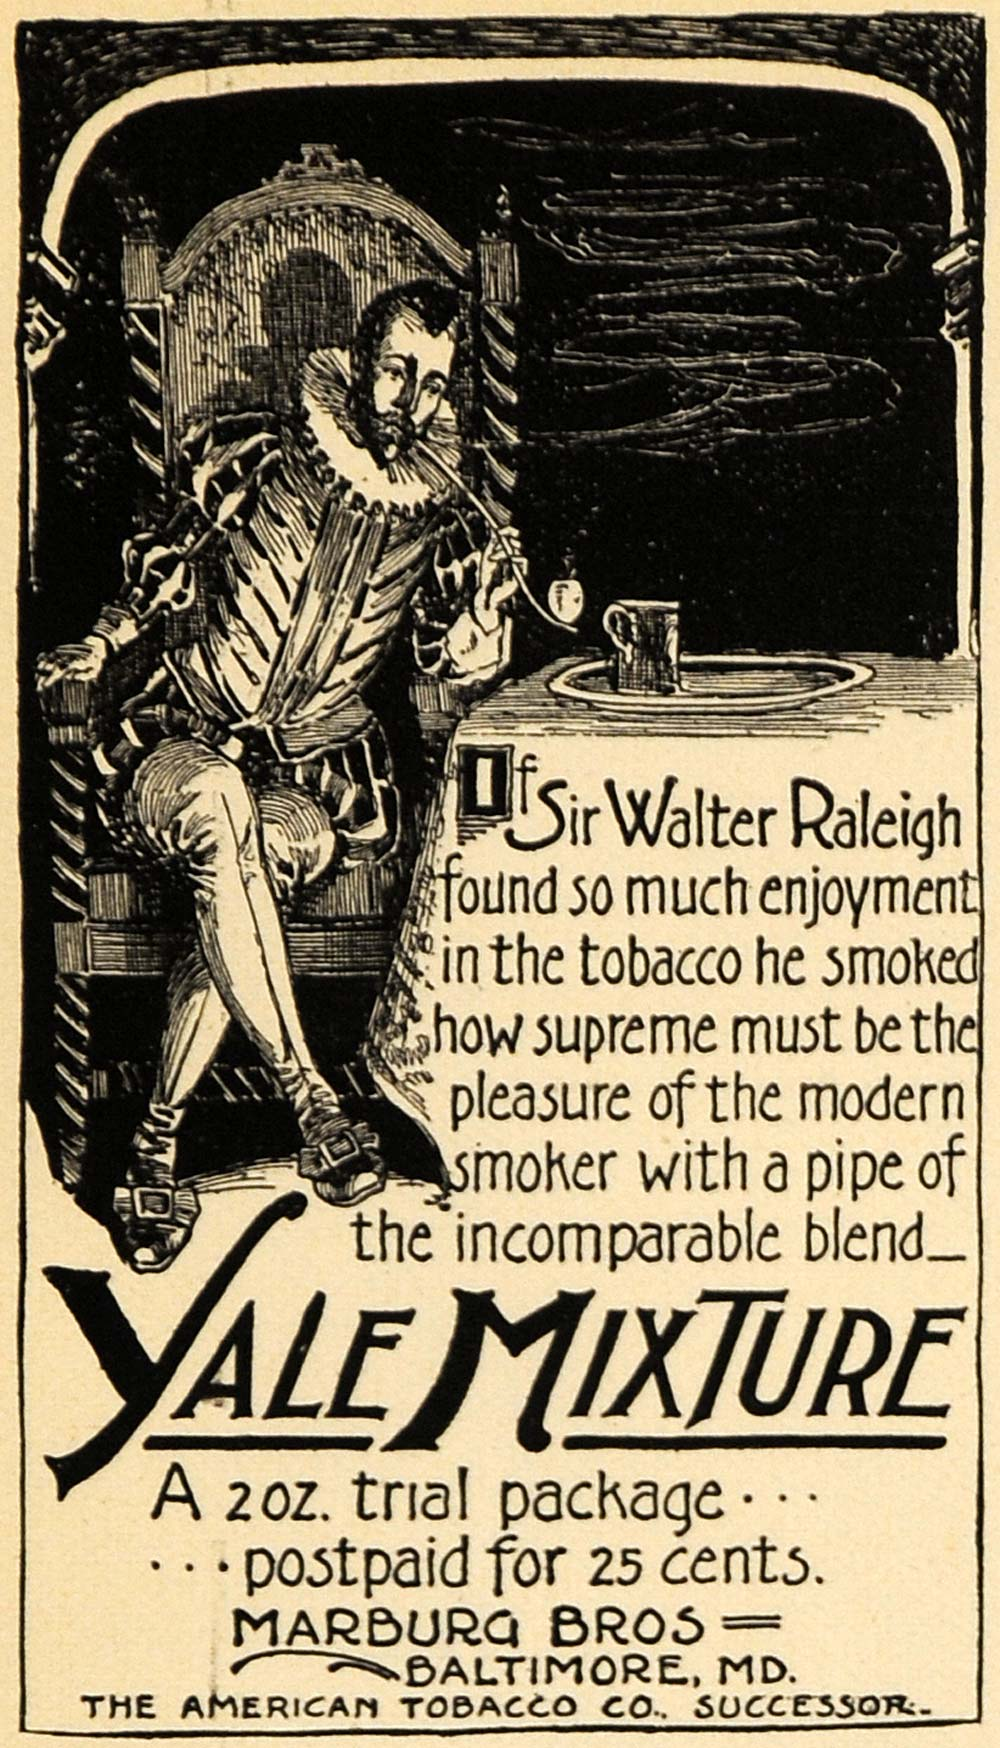 1895 Ad Yale Mixture Walter Raleigh Tobacco Pipe Smoke - ORIGINAL TFO1